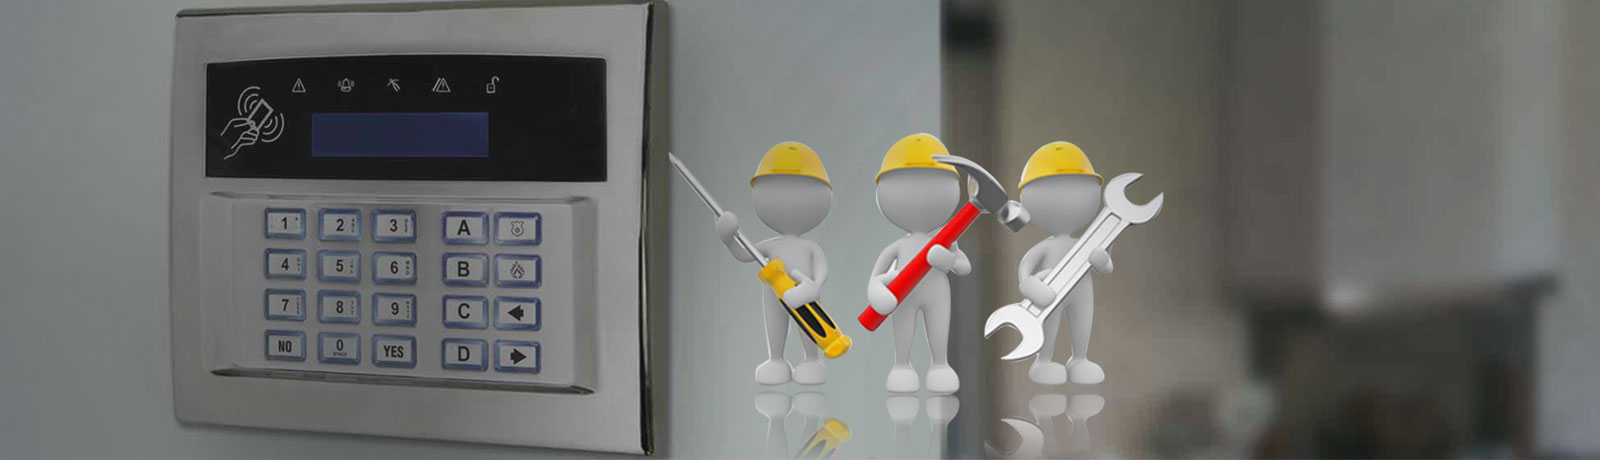 Intruder Alarm Maintenance Service in UAE